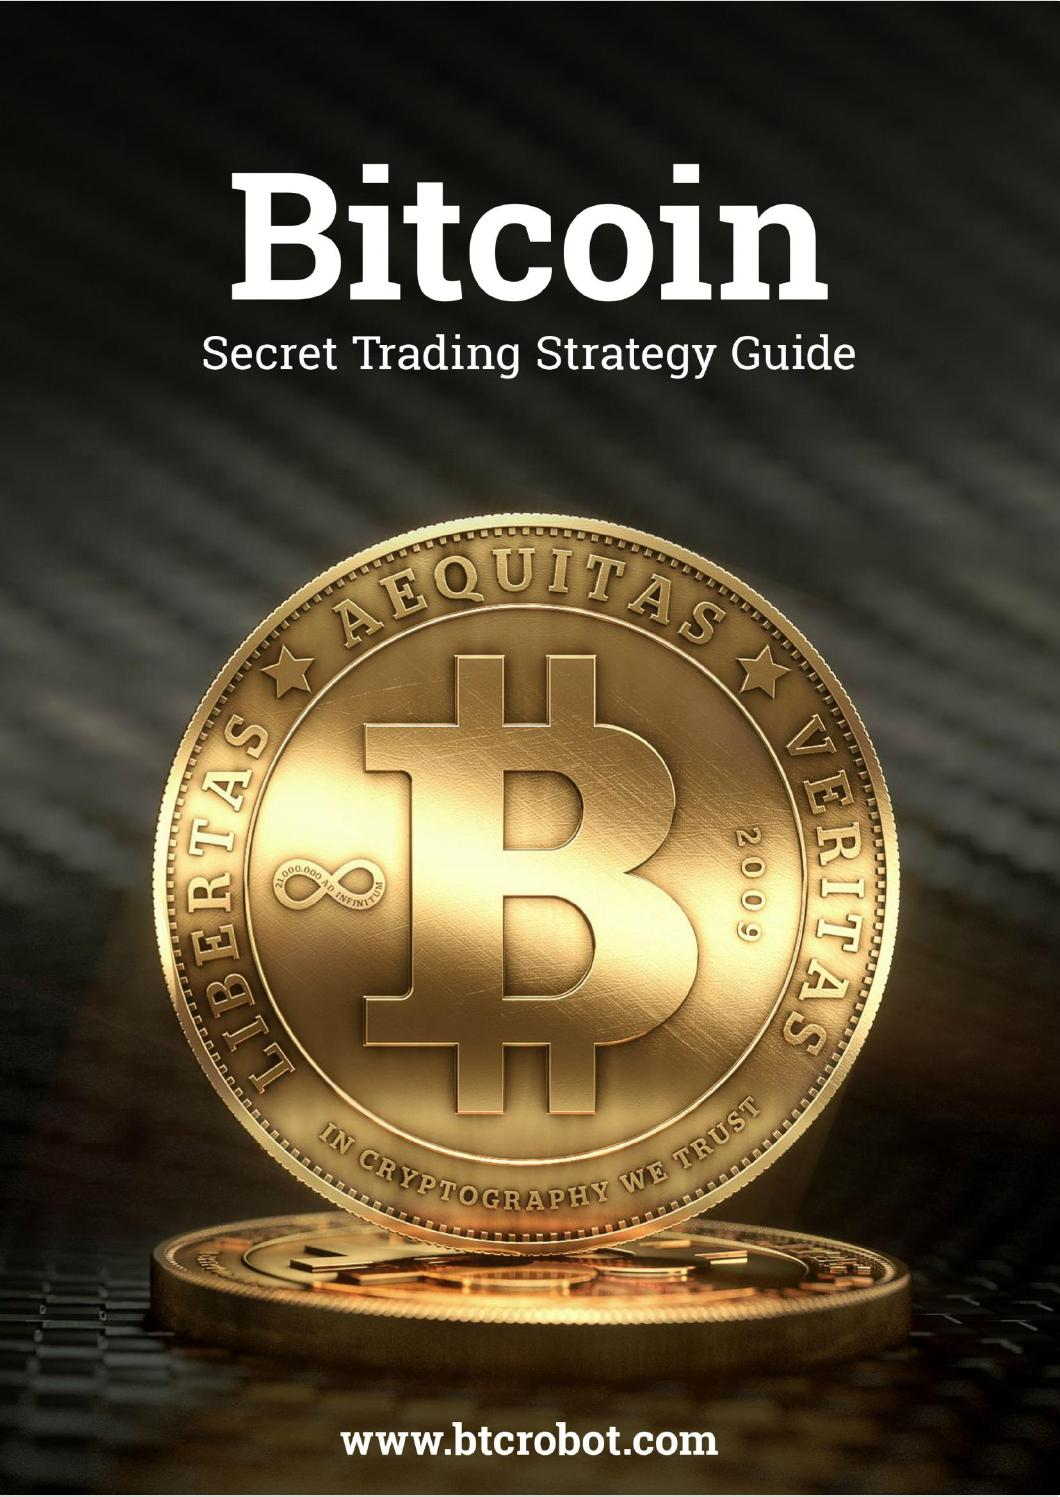 Bitcoin Secret Trading Strategy Guide By Klaus Leobold Issuu